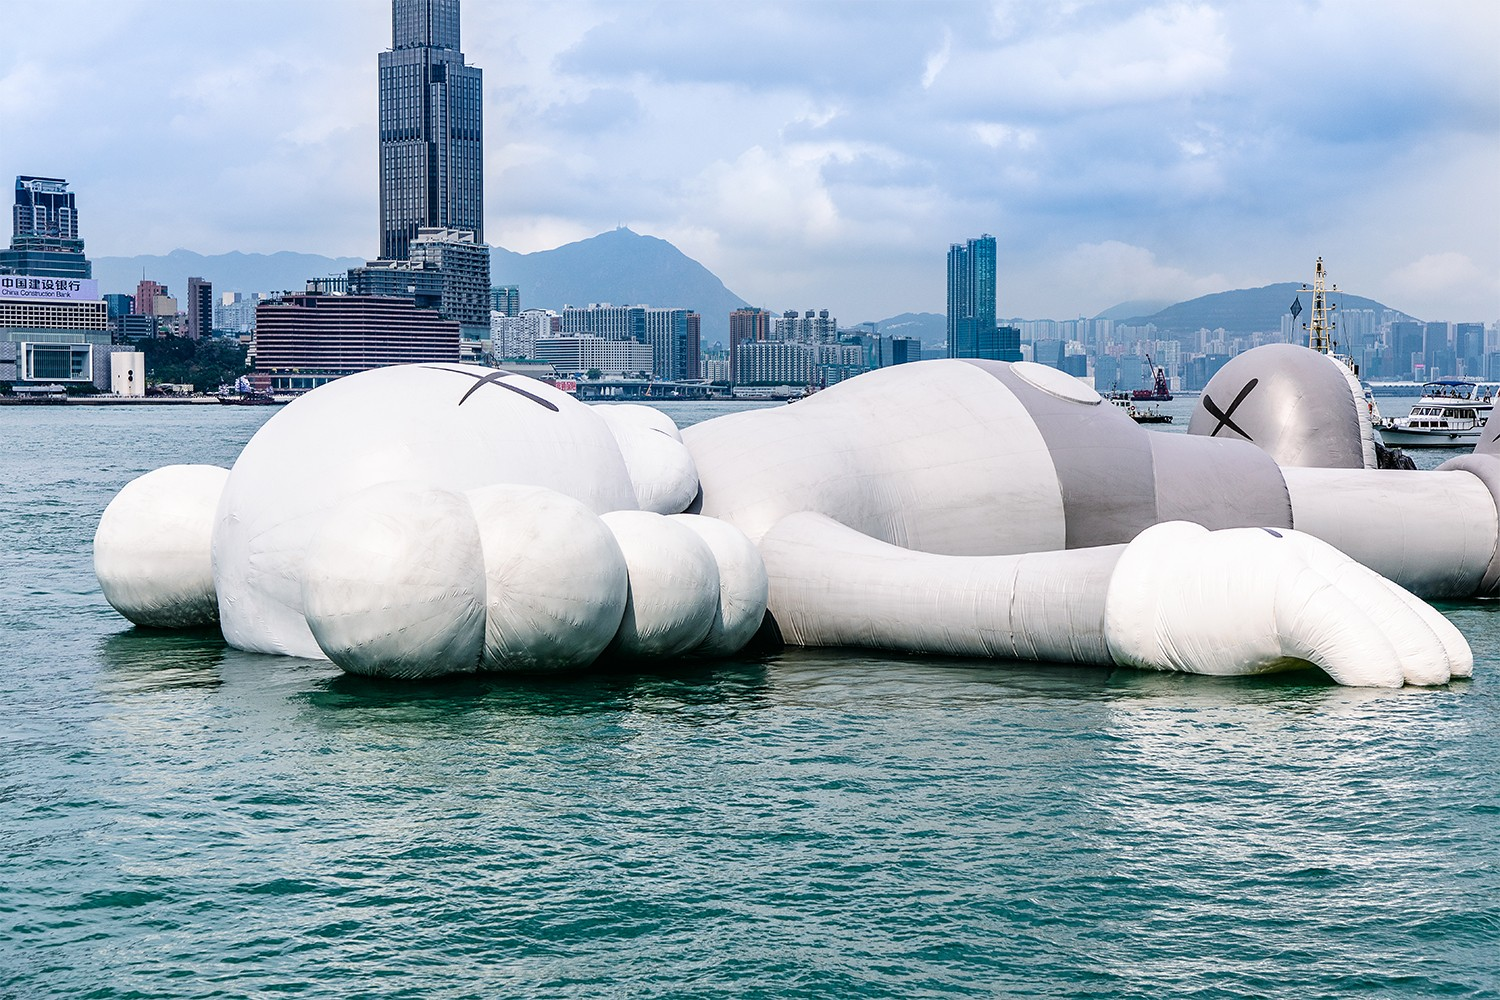 kaws holiday float installation allrightsreserved art basel hong kong